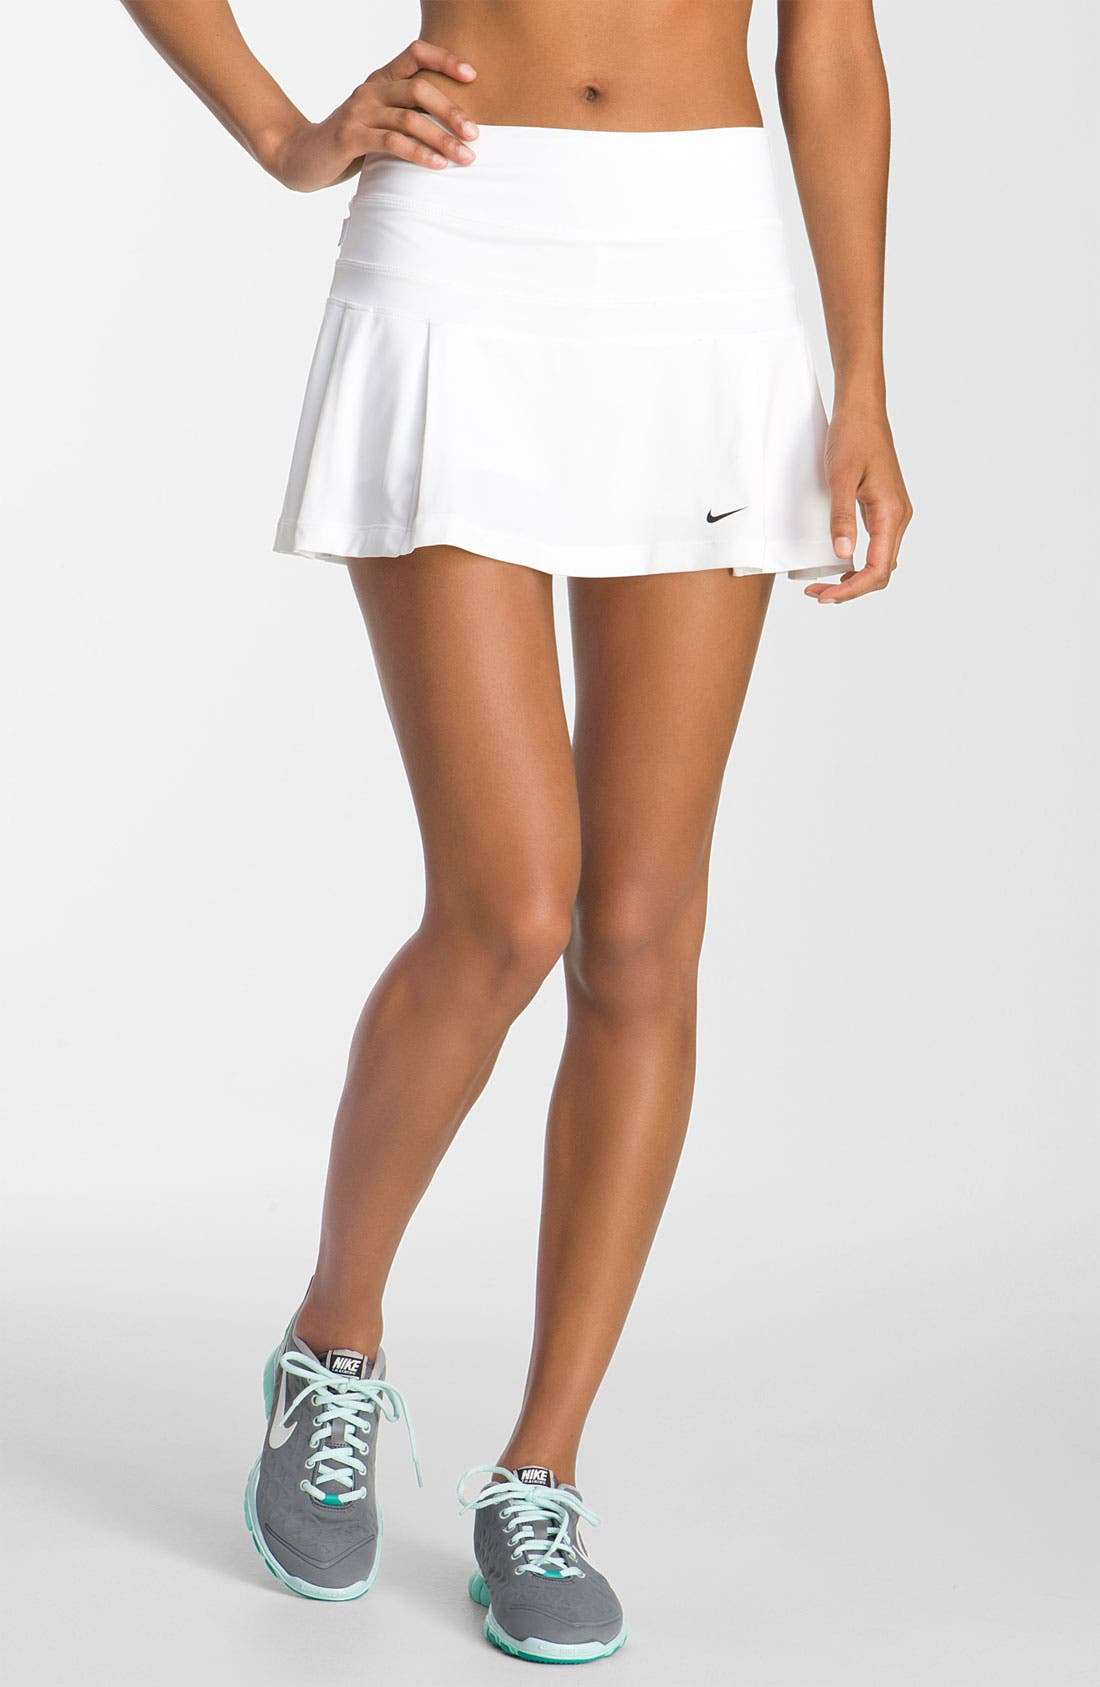 Main Image - Nike 'Share Athlete' Tennis Skirt